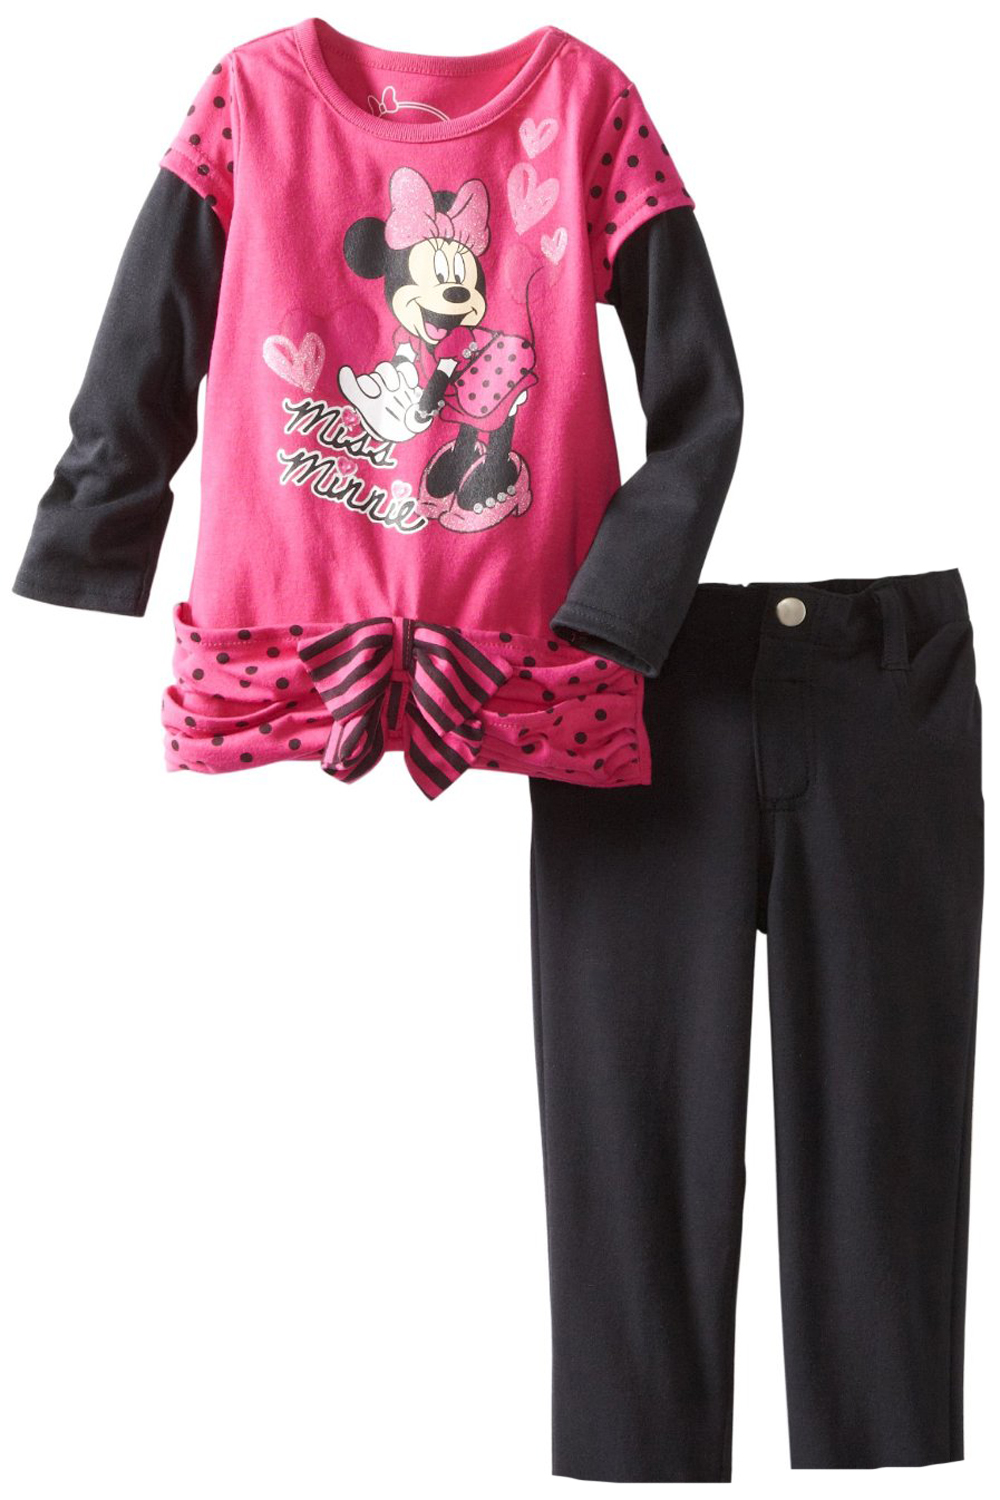 Disney Toddler Girls 2 Piece Pink Polka Dot Minnie Mouse Tunic Top Stretch Pants at Sears.com